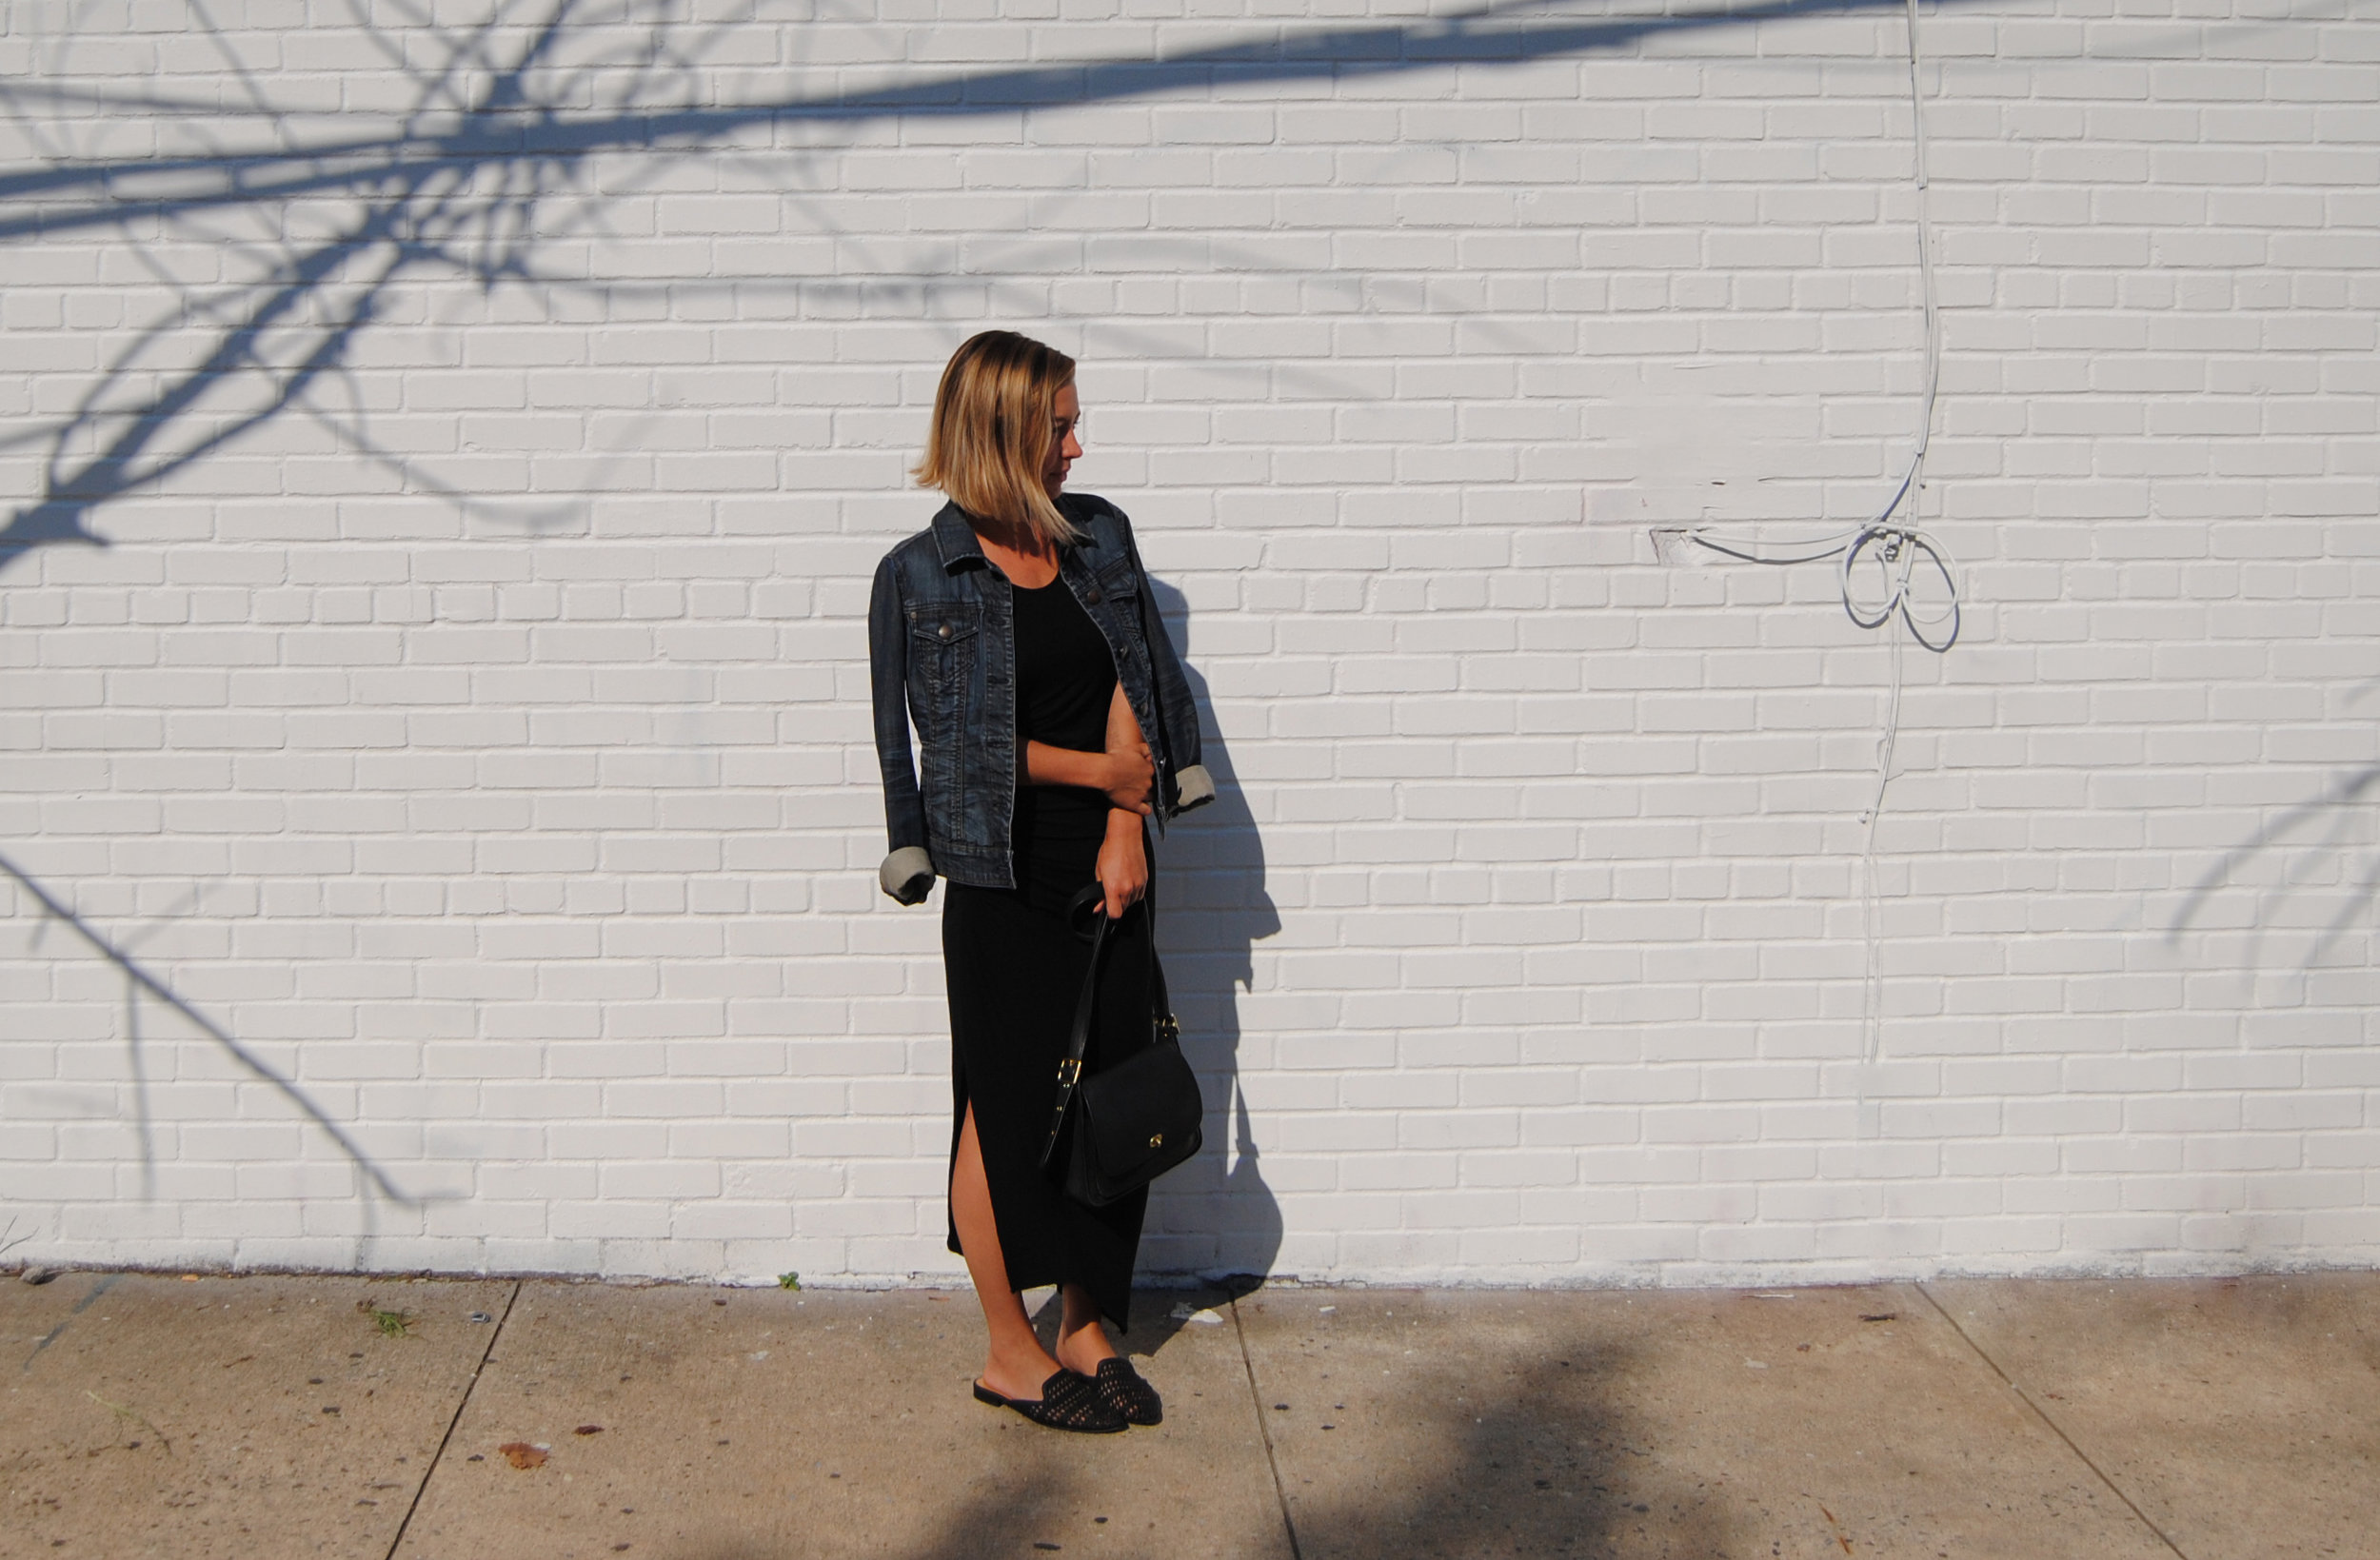 leanne luce in neural network-inspired outfit, black asymmetrical jersey dress from target, denim jacket, black coach bag, and black woven mules from target.